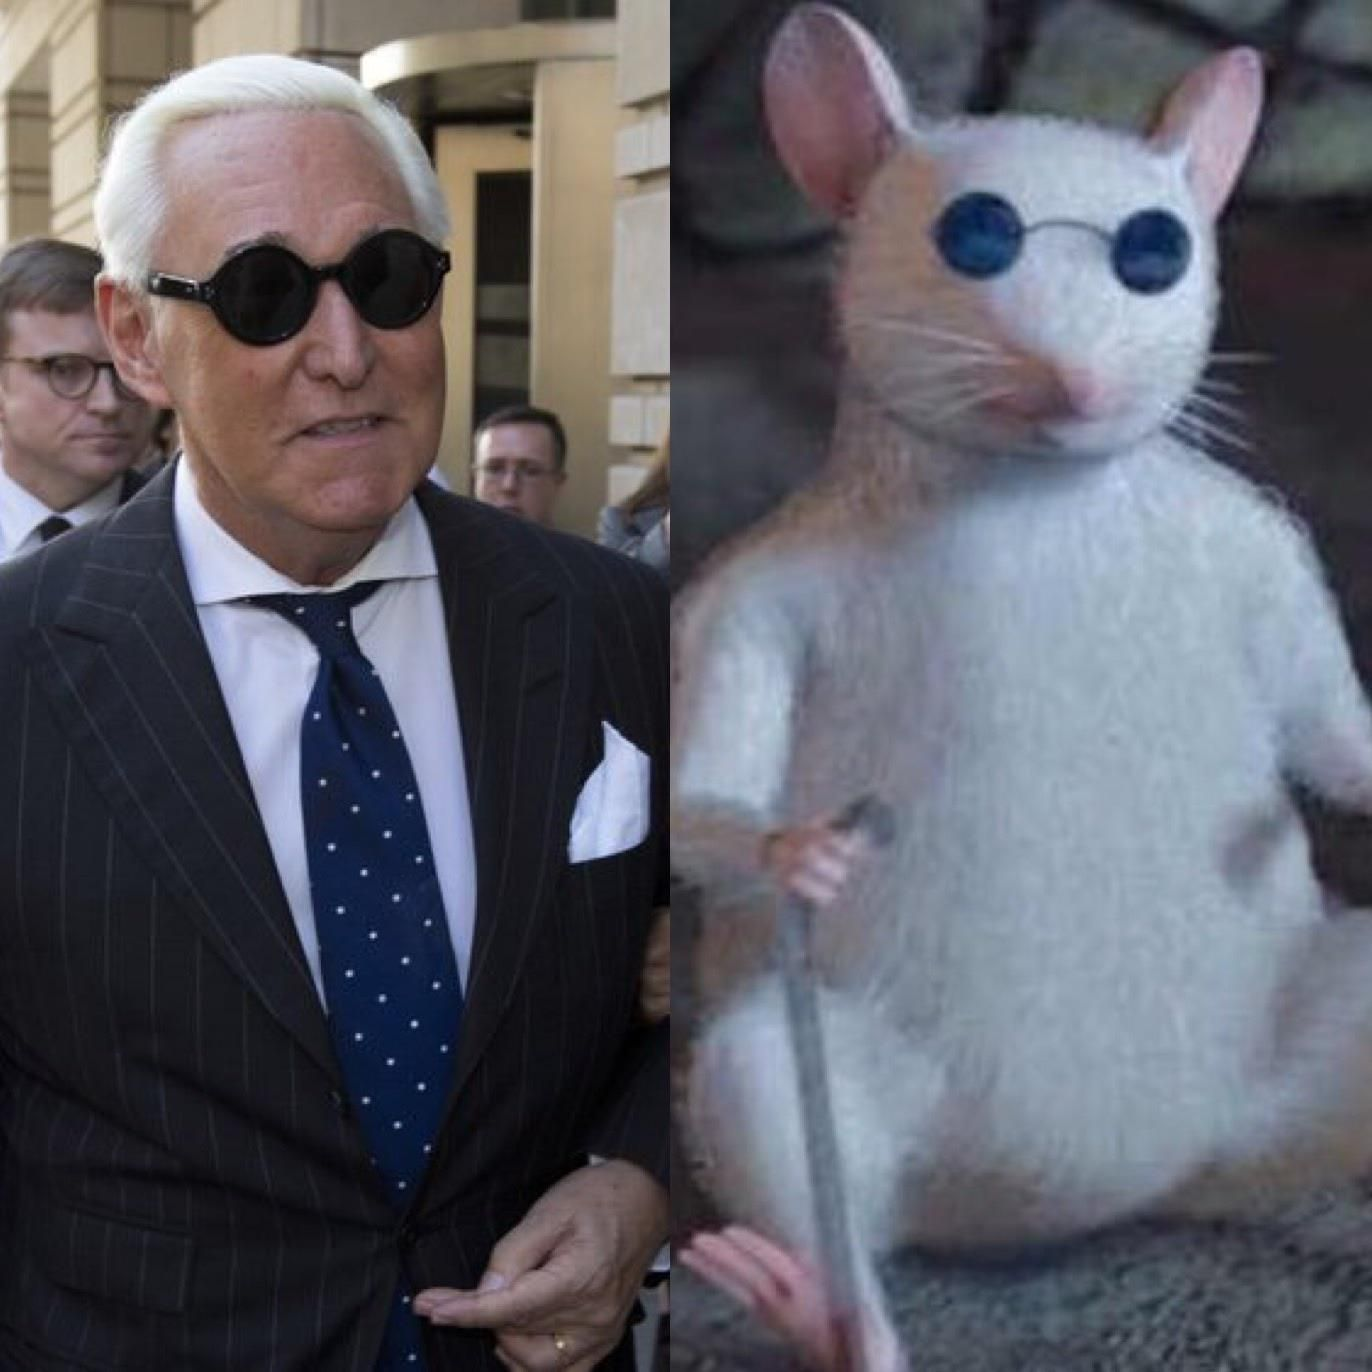 Roger Stone looks like one of the blind mice from Shrek